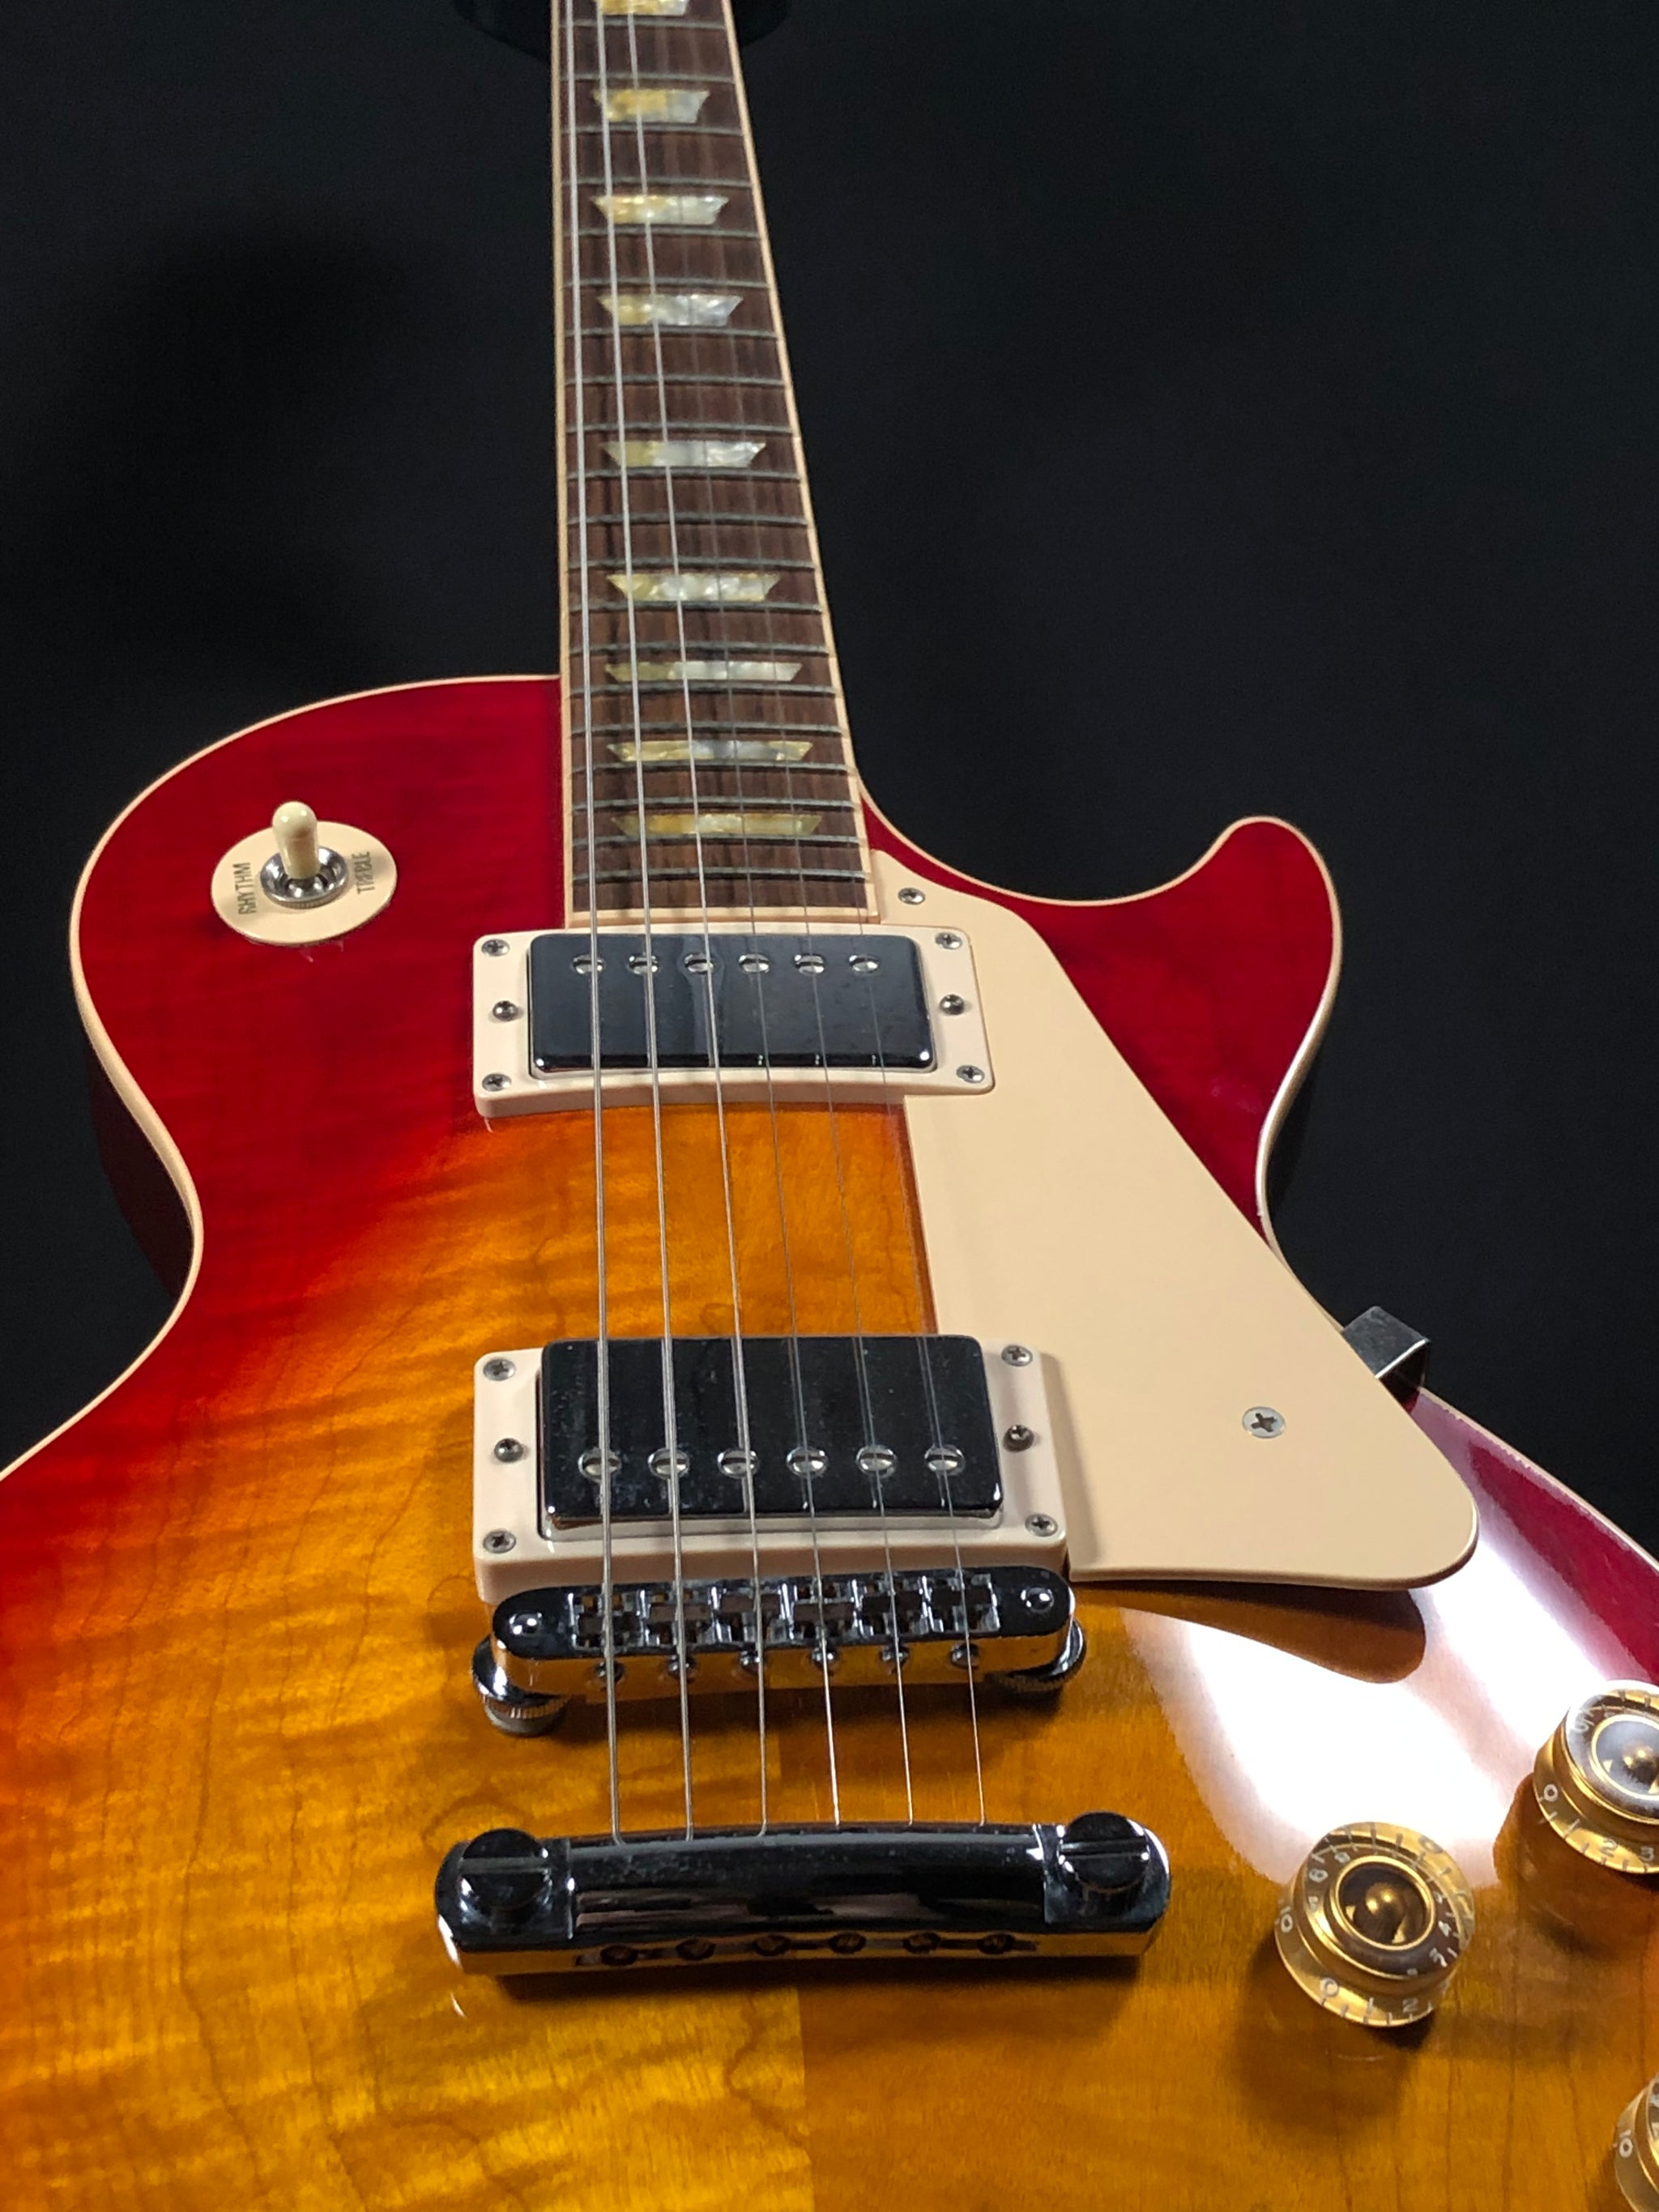 **** SOLD **** 1993 Gibson Les Paul Standard - Cherry Sunburst